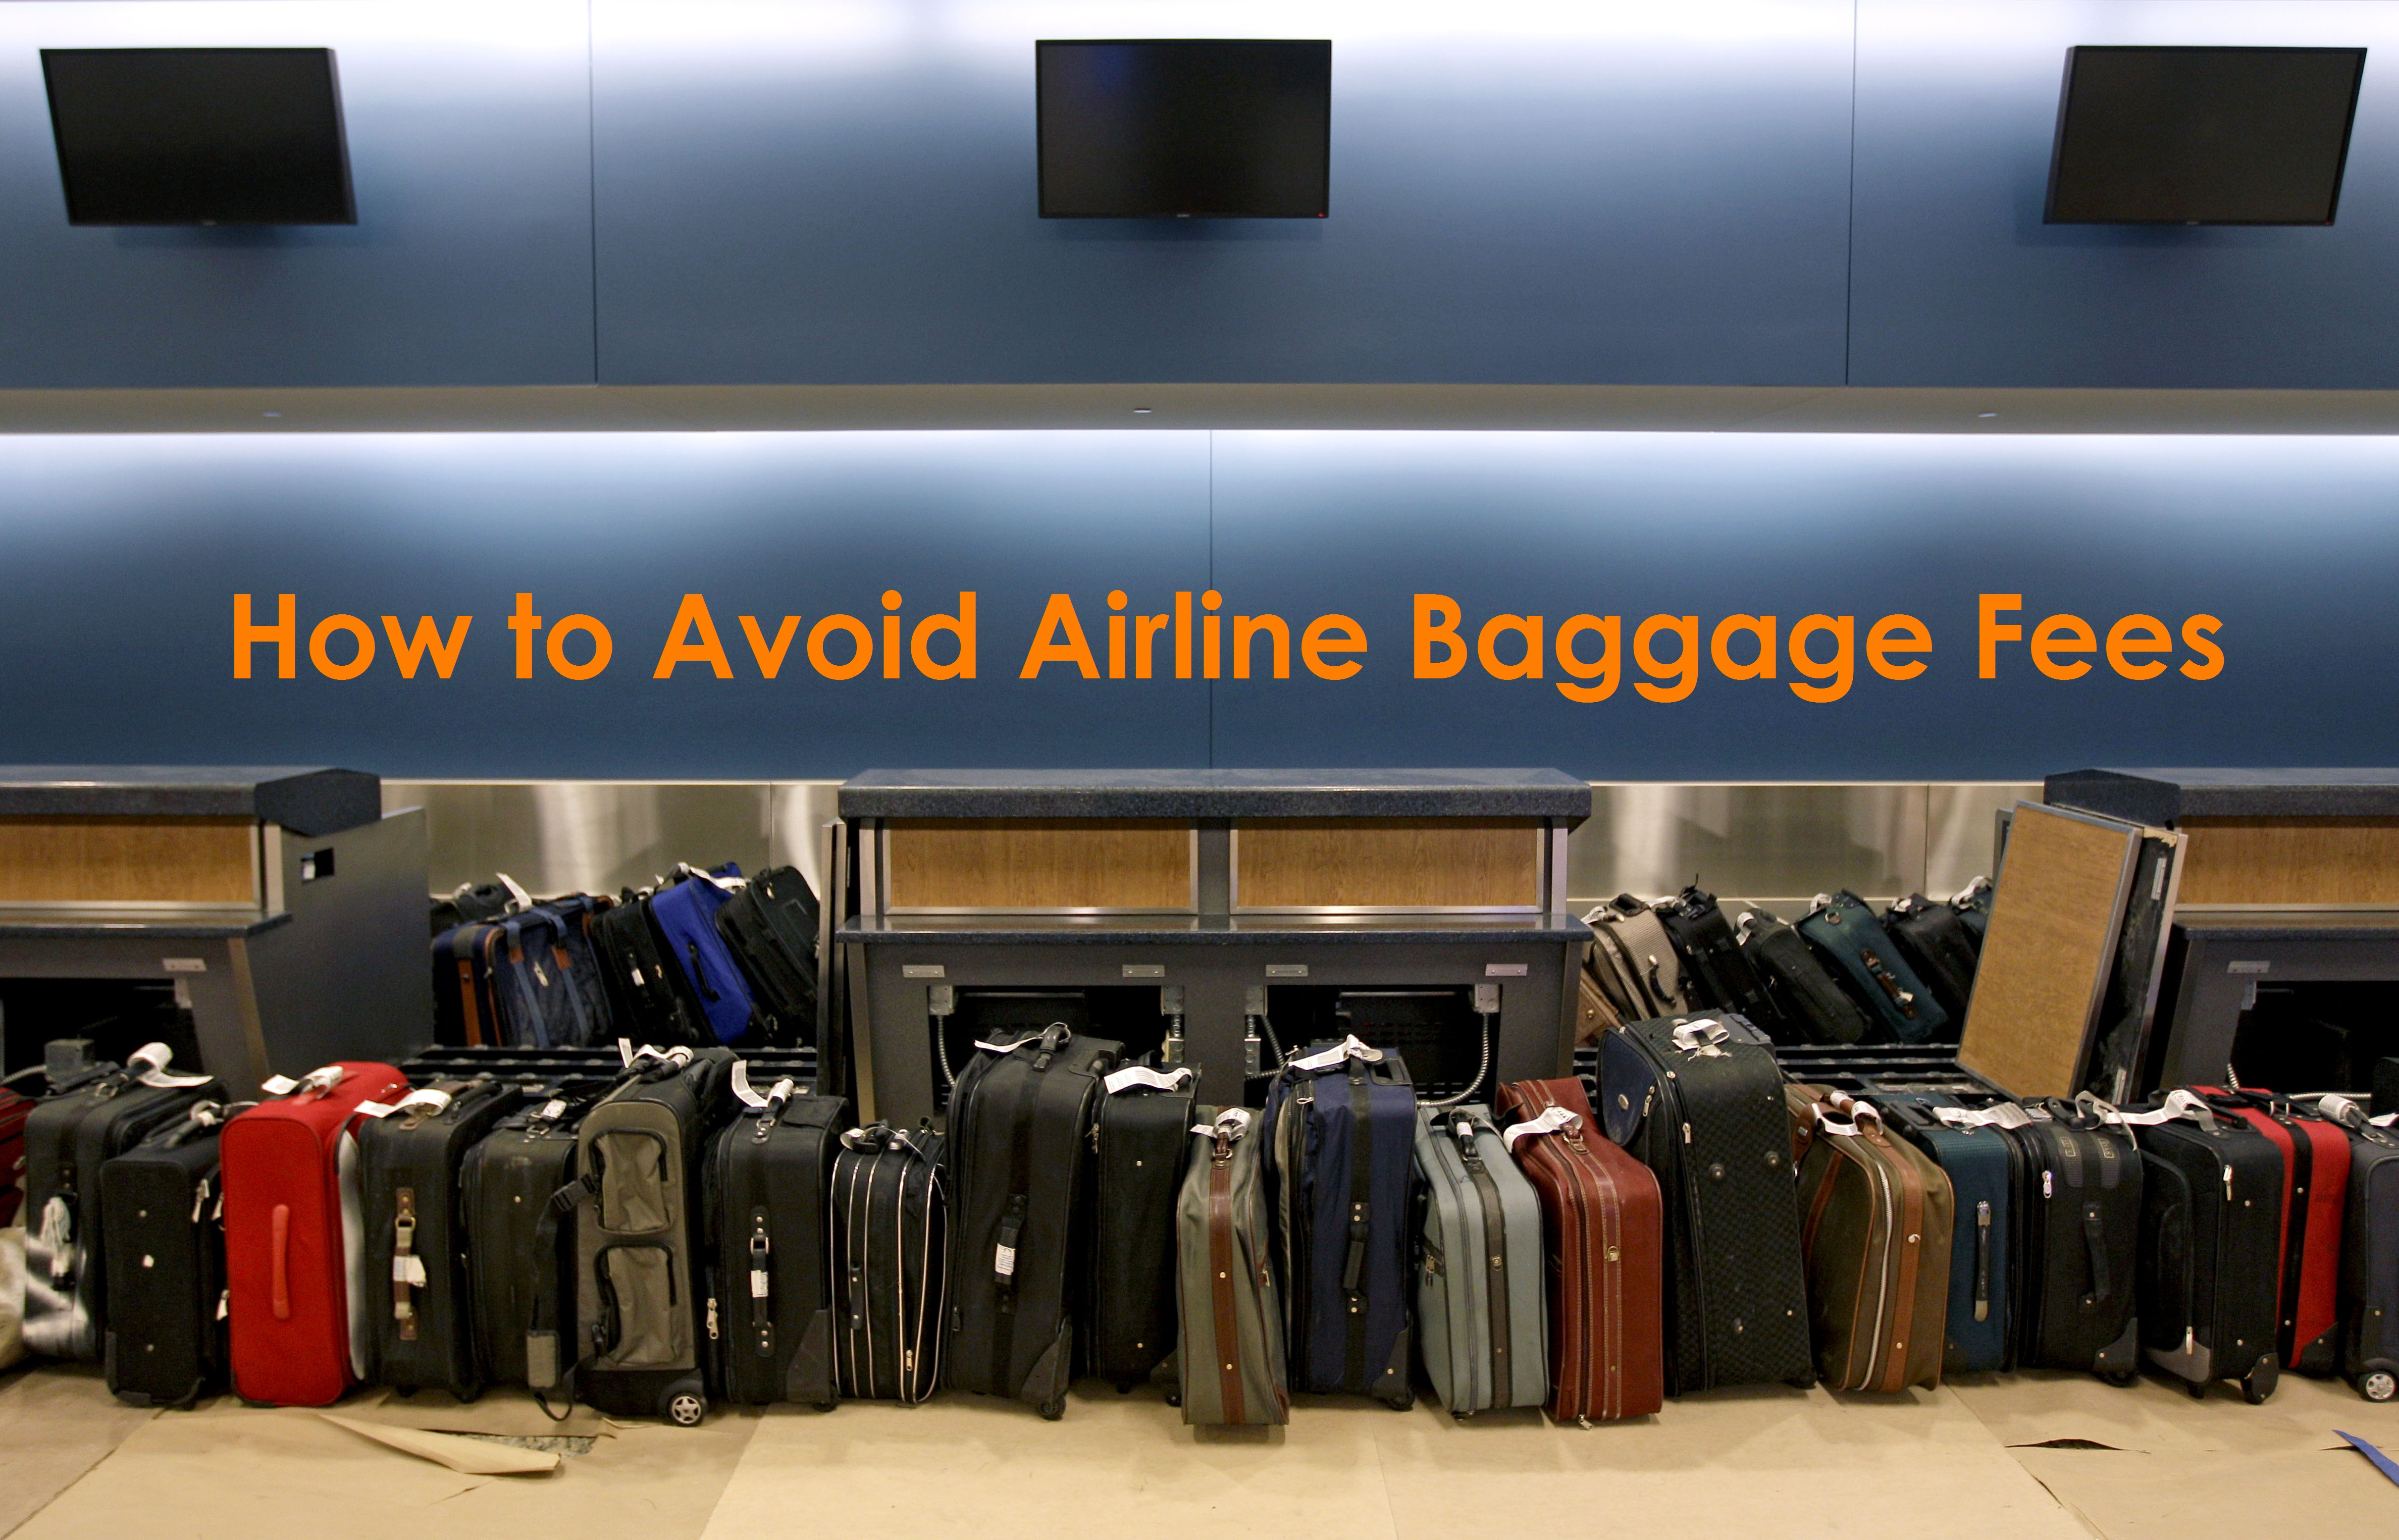 Travel Advice | How To Avoid Airline Baggage Fees